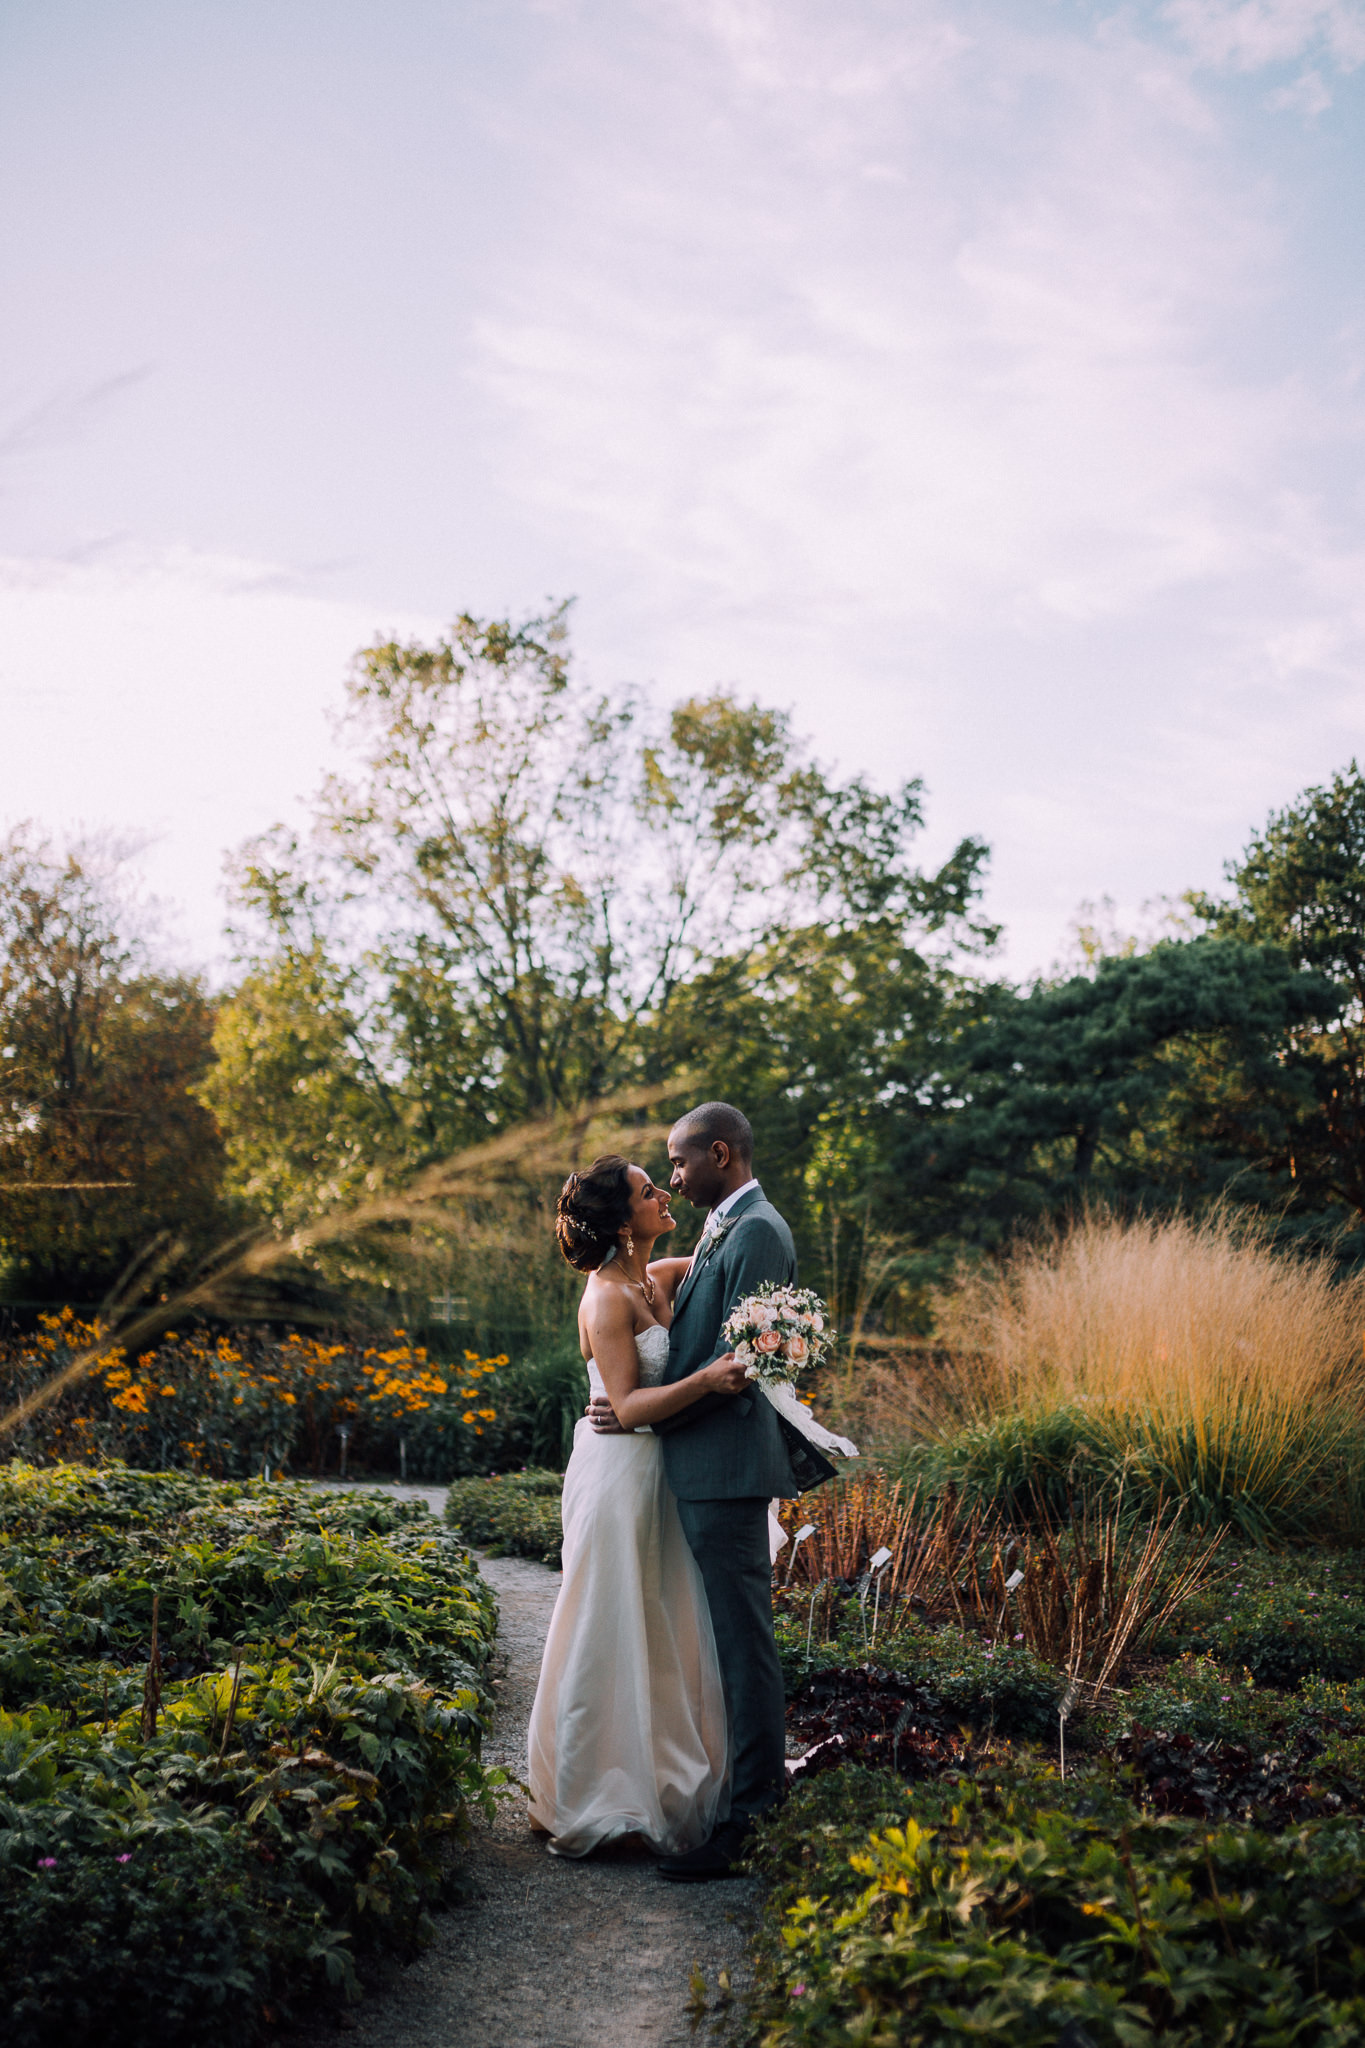 Burlington Fall wedding at Royal Botanical Gardens by Max Wong Photo (44)